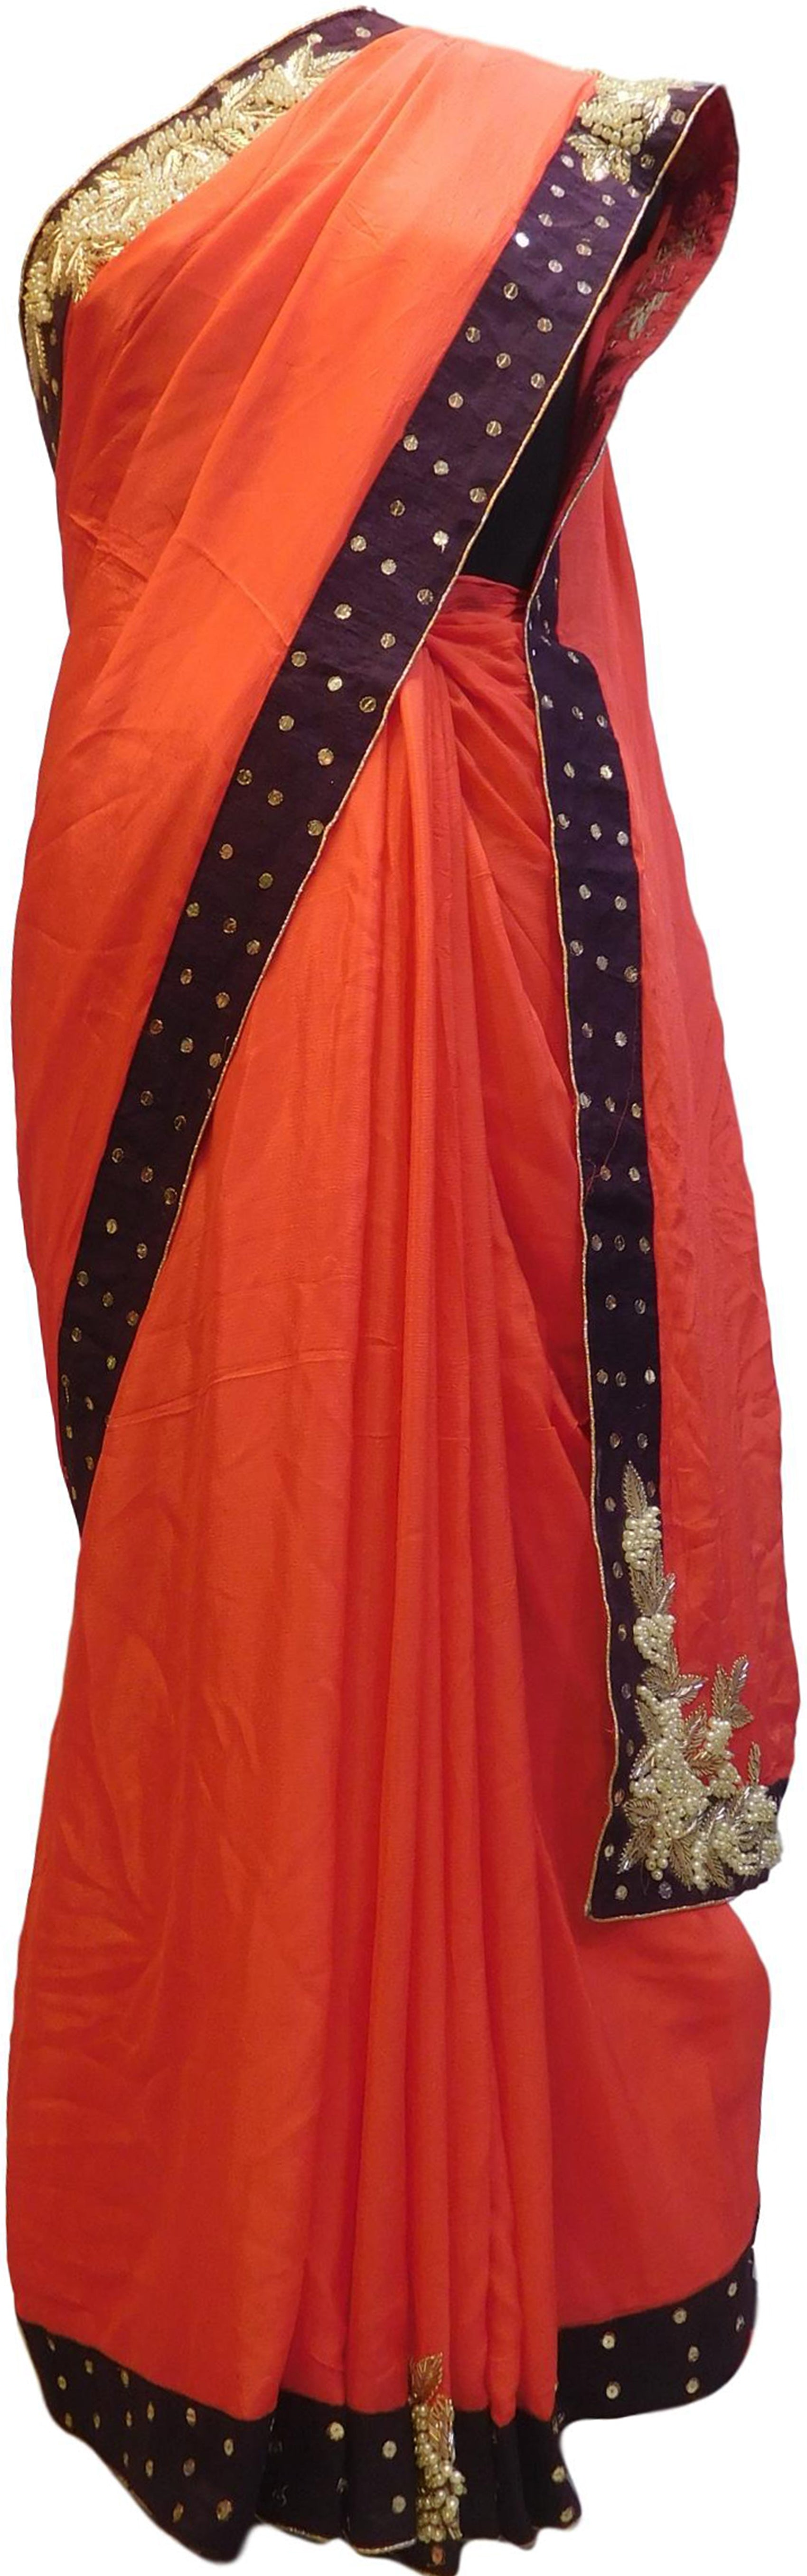 Red Designer Wedding Partywear Crepe (Chinon) Bullion Pearl Sequence Cutdana Beads Hand Embroidery Work Bridal Saree Sari E084